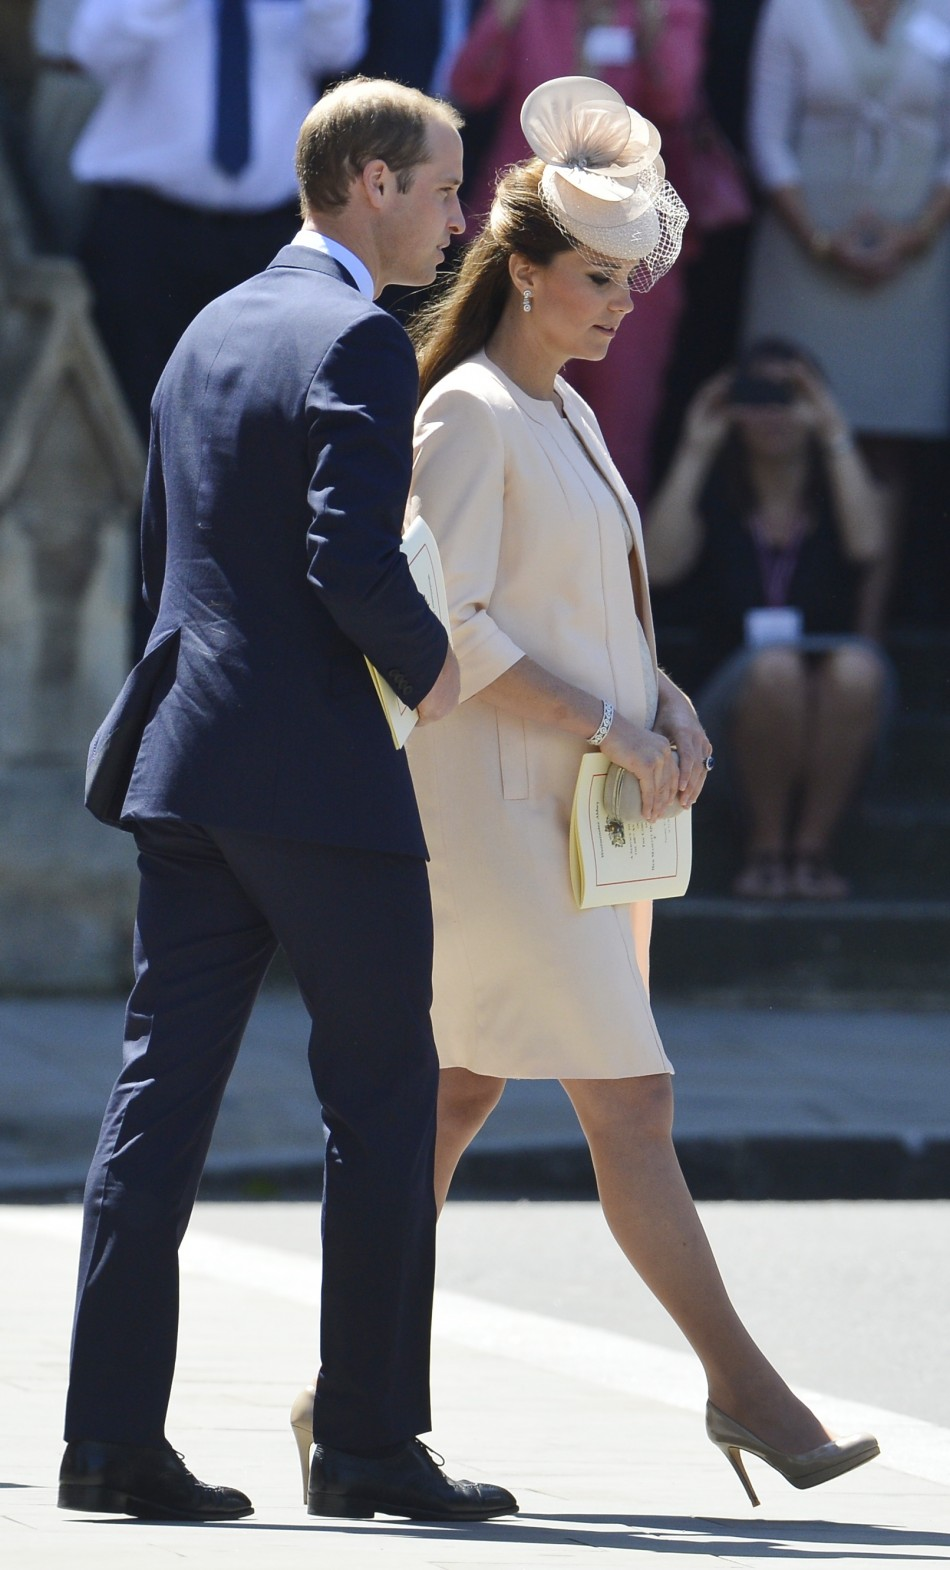 Prince William L and Catherine, Duchess of Cambridge depart Westminster Abbey after celebrating the 60th anniversary of Queen Elizabeths coronation in London June 4, 2013.